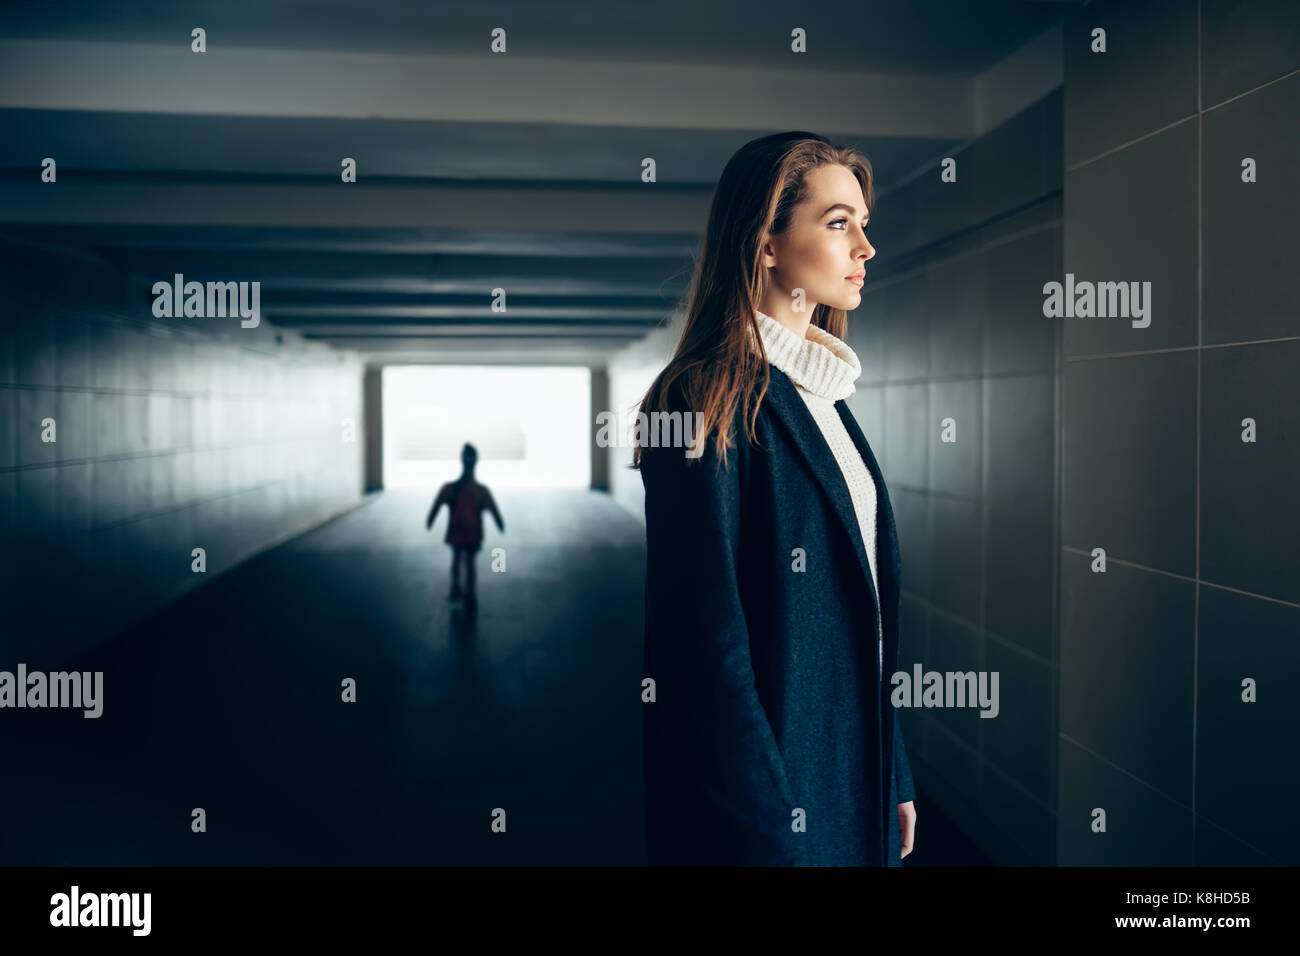 Beautiful lonely woman in a subway tunnel with frighten silhouette on background. surrealism concept - Stock Image